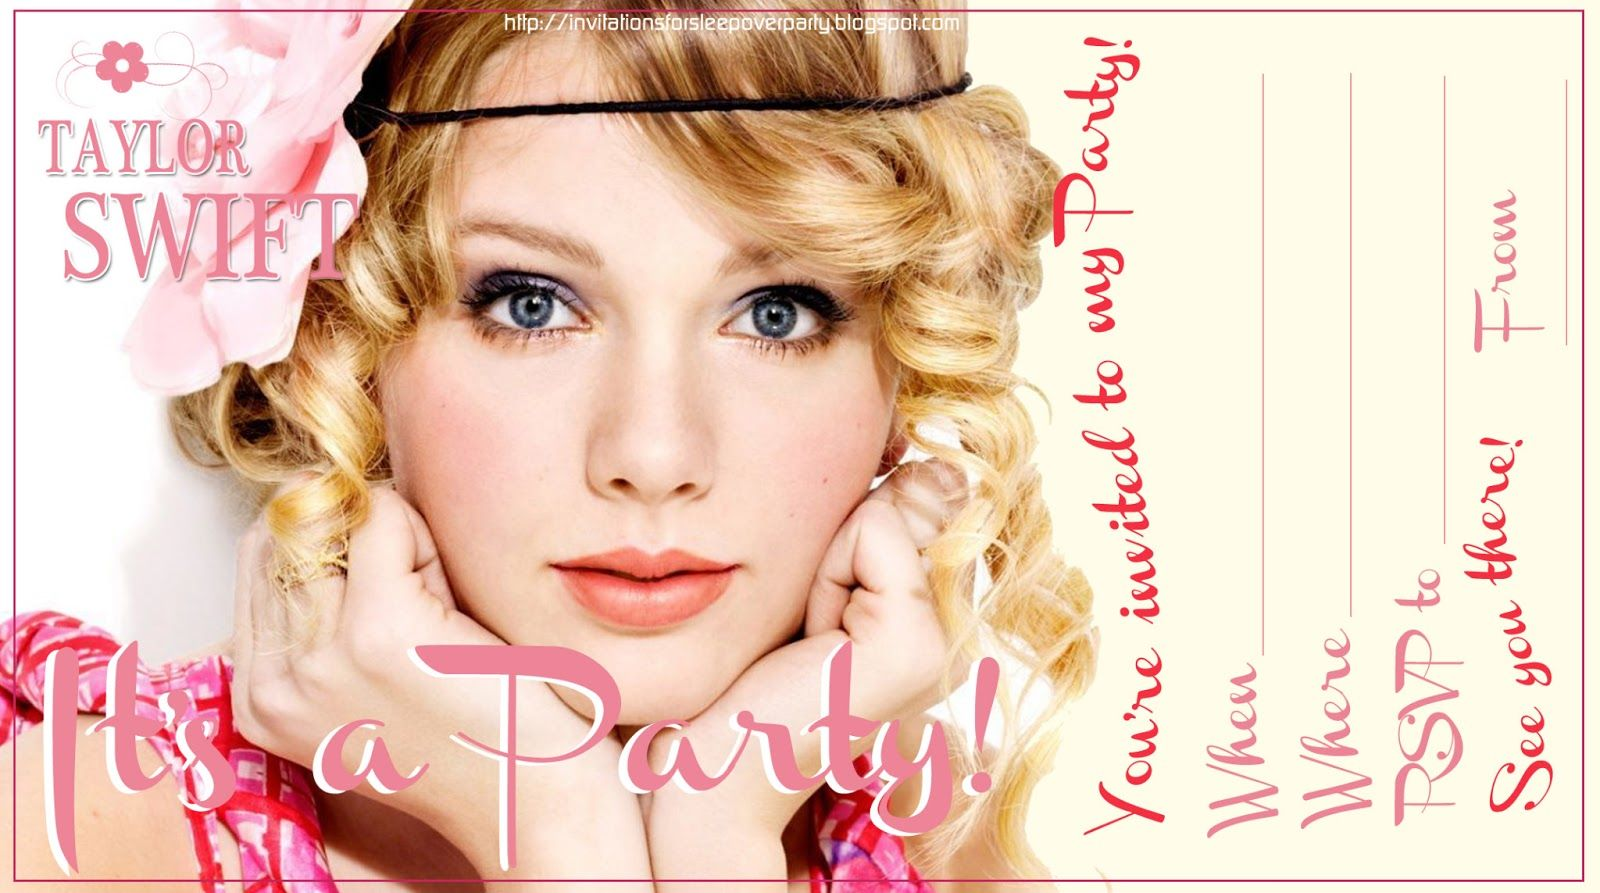 Beau Taylor Swift   Free To Print   Party Invitation Customisable   Just Fill In  The Blanks